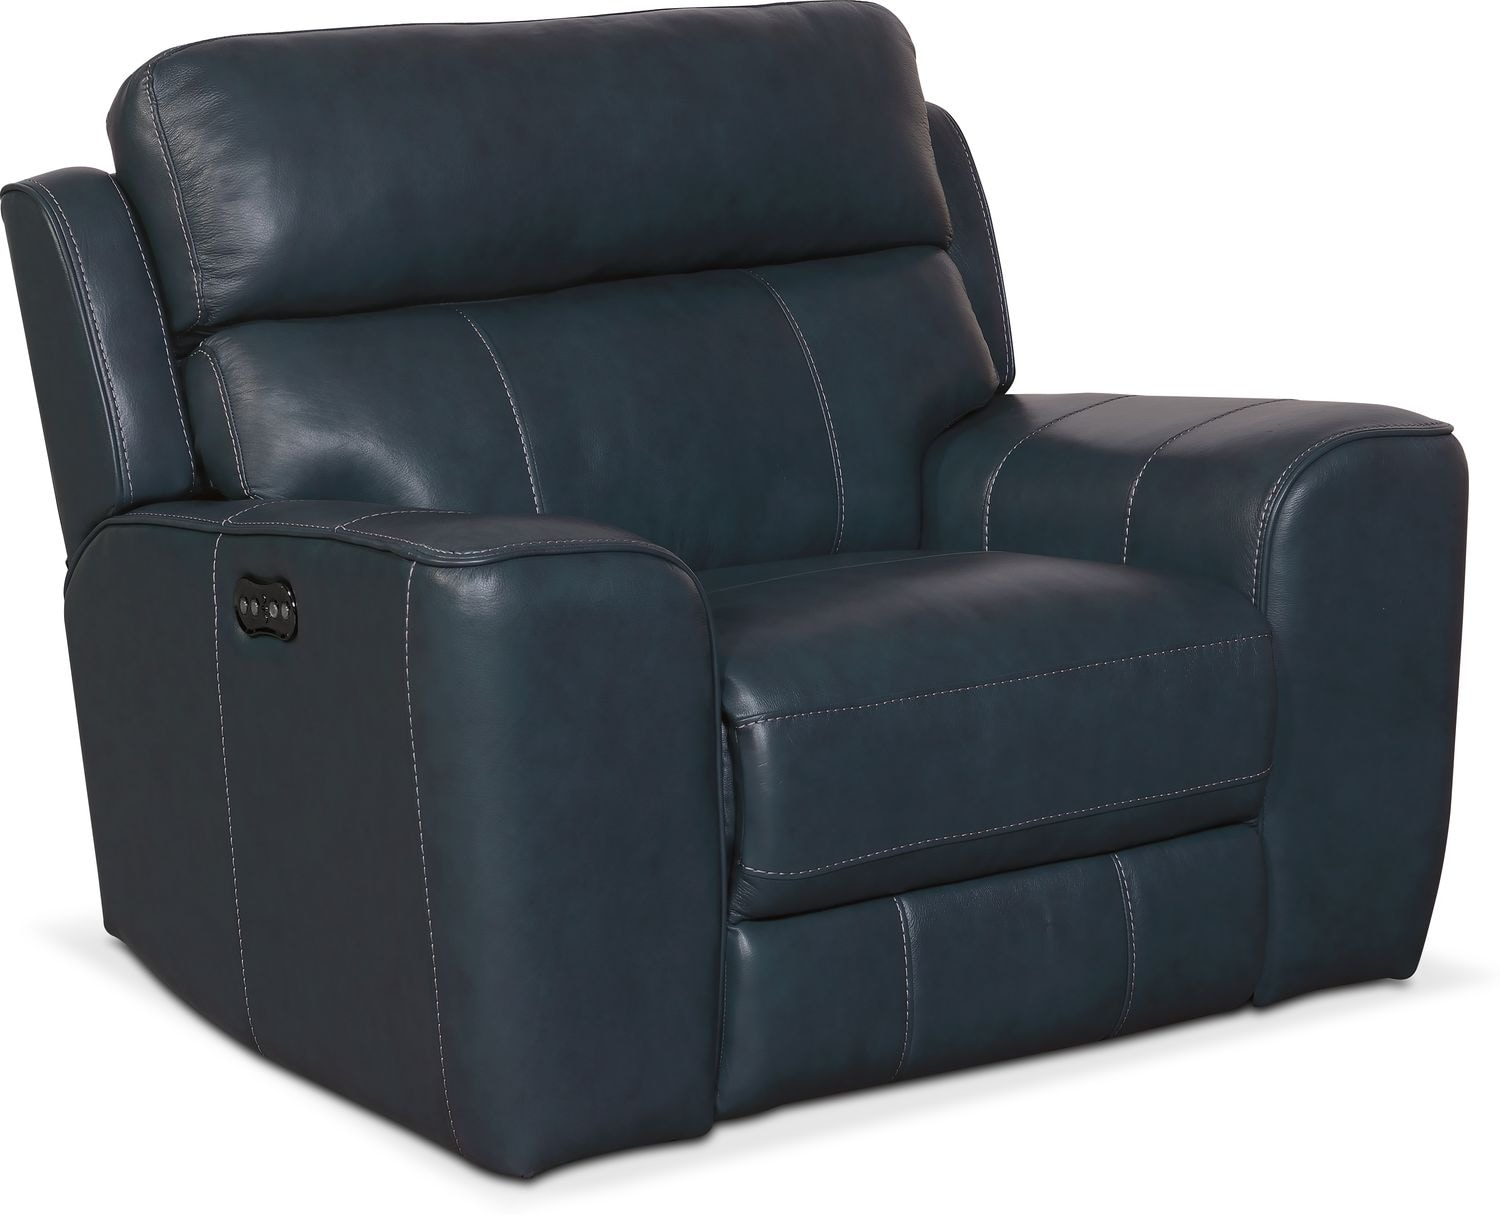 Living Room Furniture - Newport Dual-Power Recliner